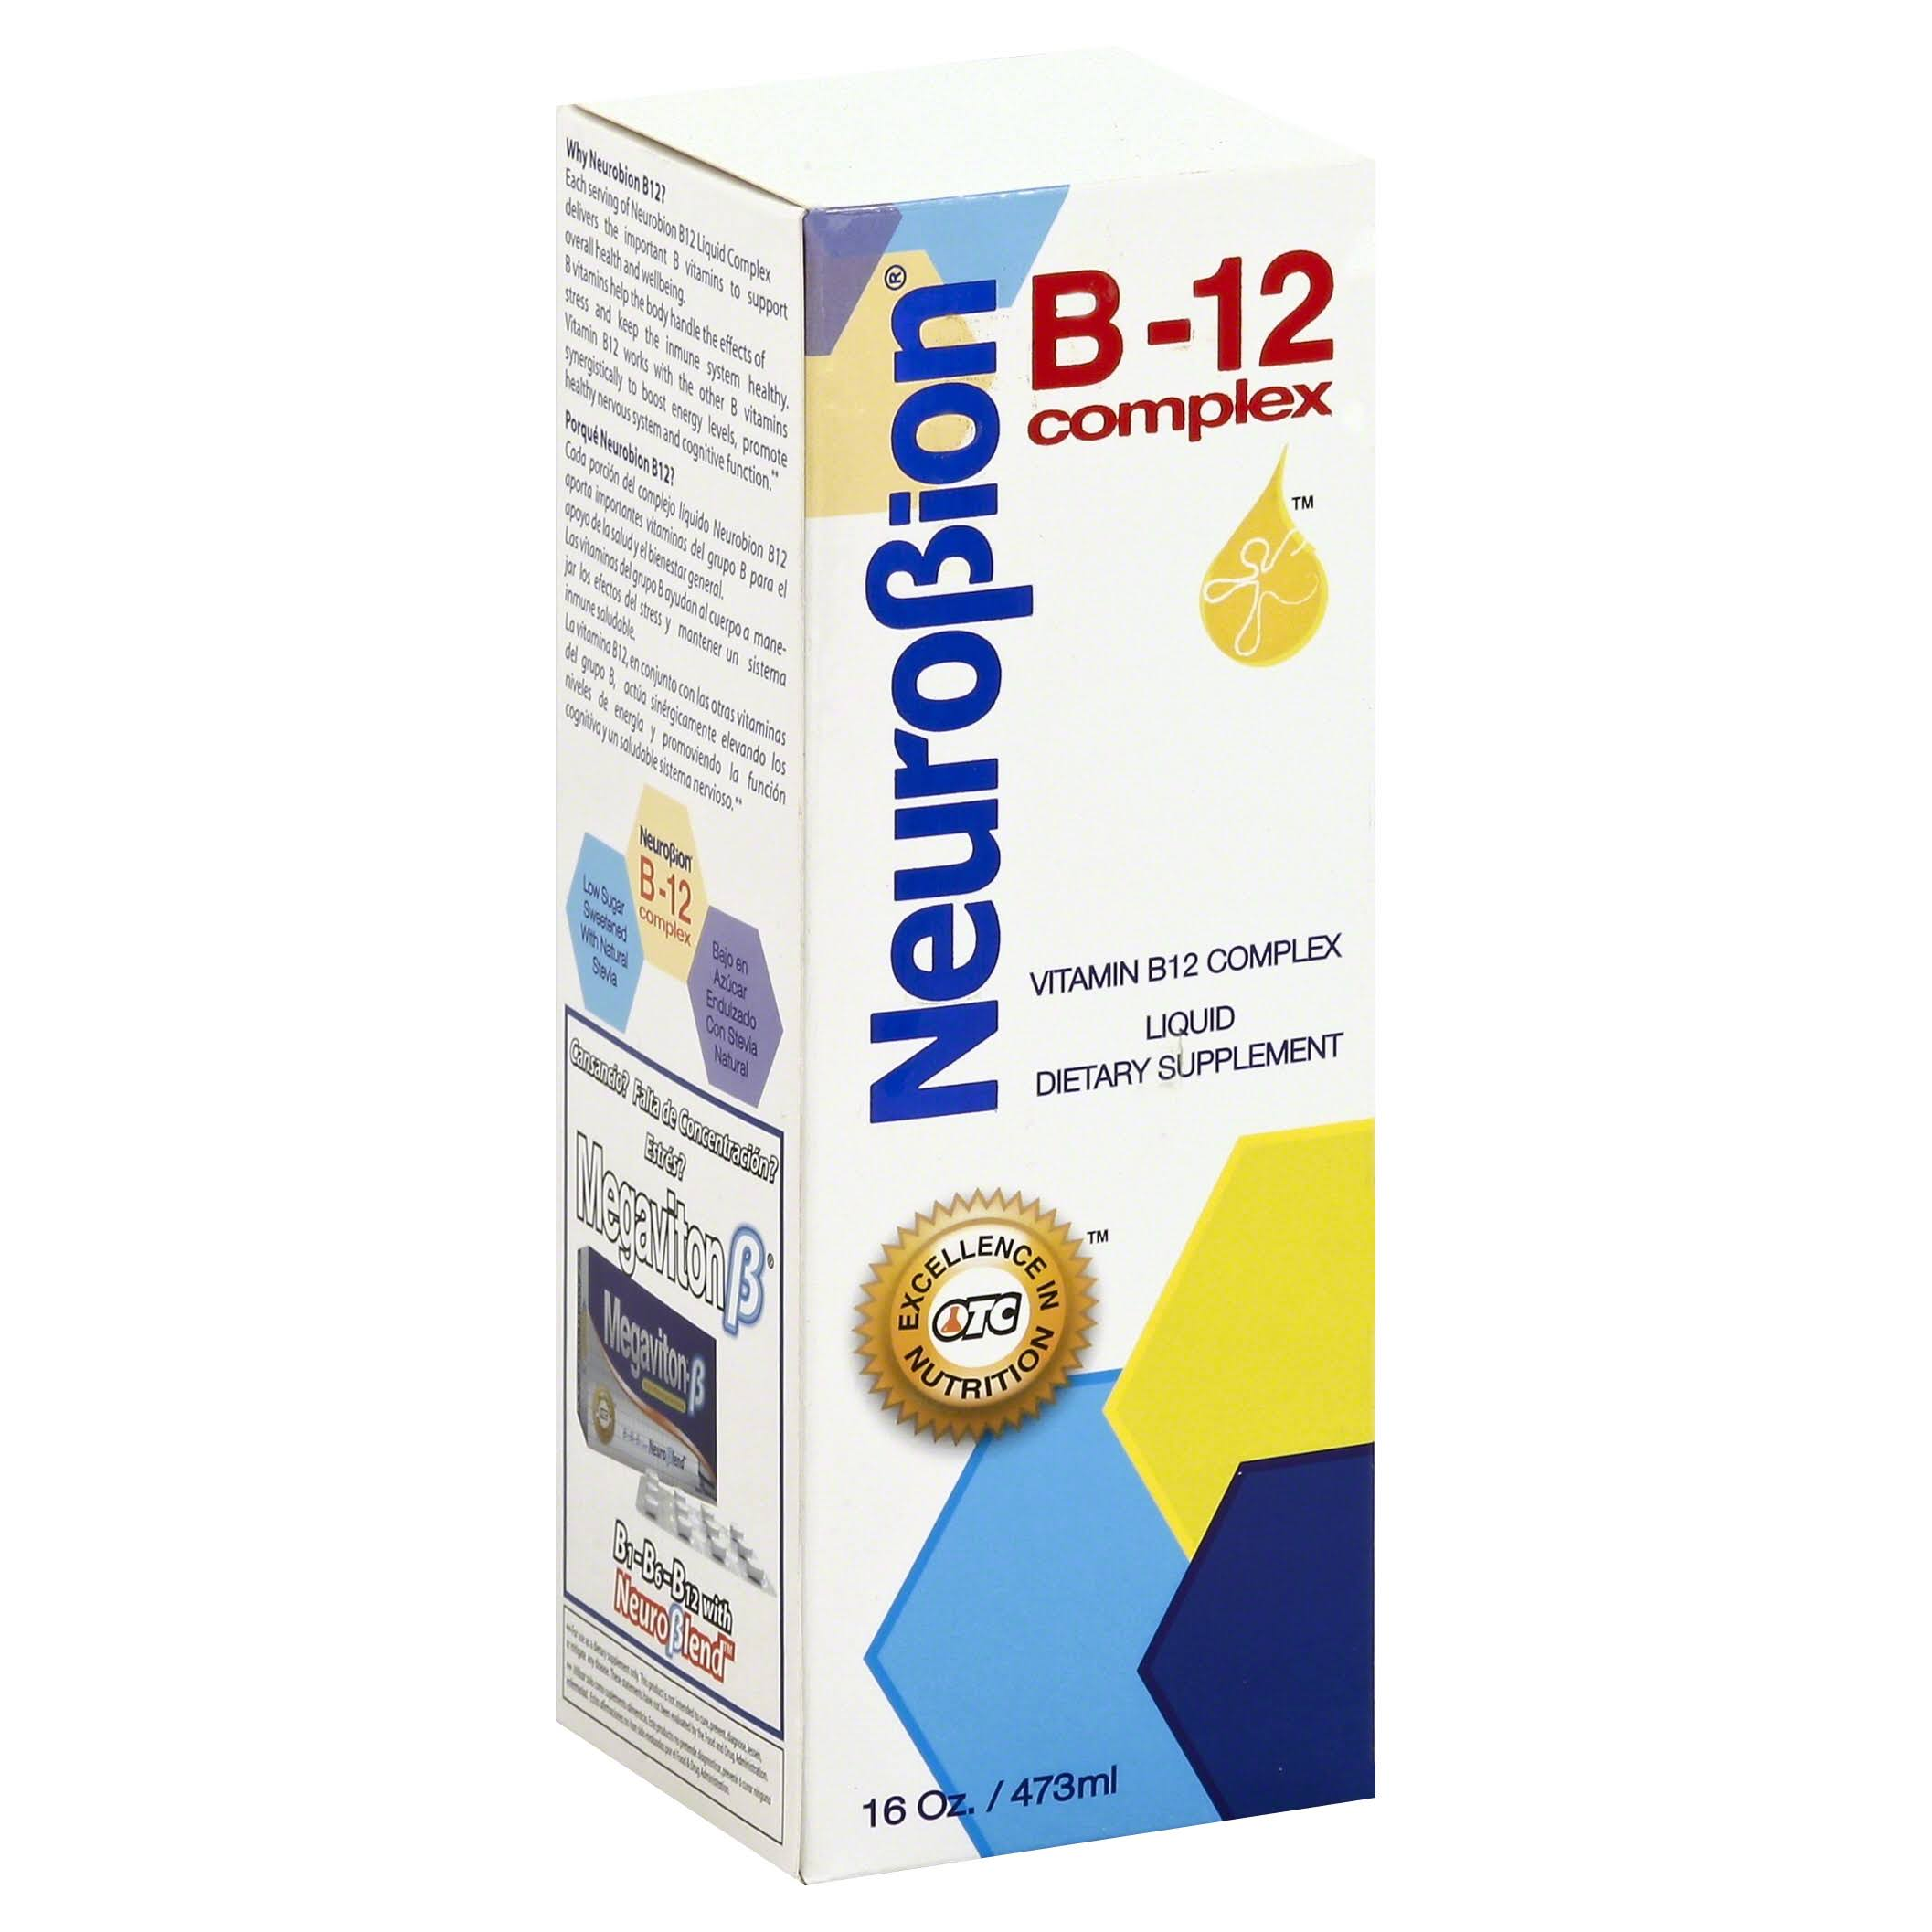 Neurobion Vitamin B12 Complex Supplement - 16oz, Liquid Citrus Flavor